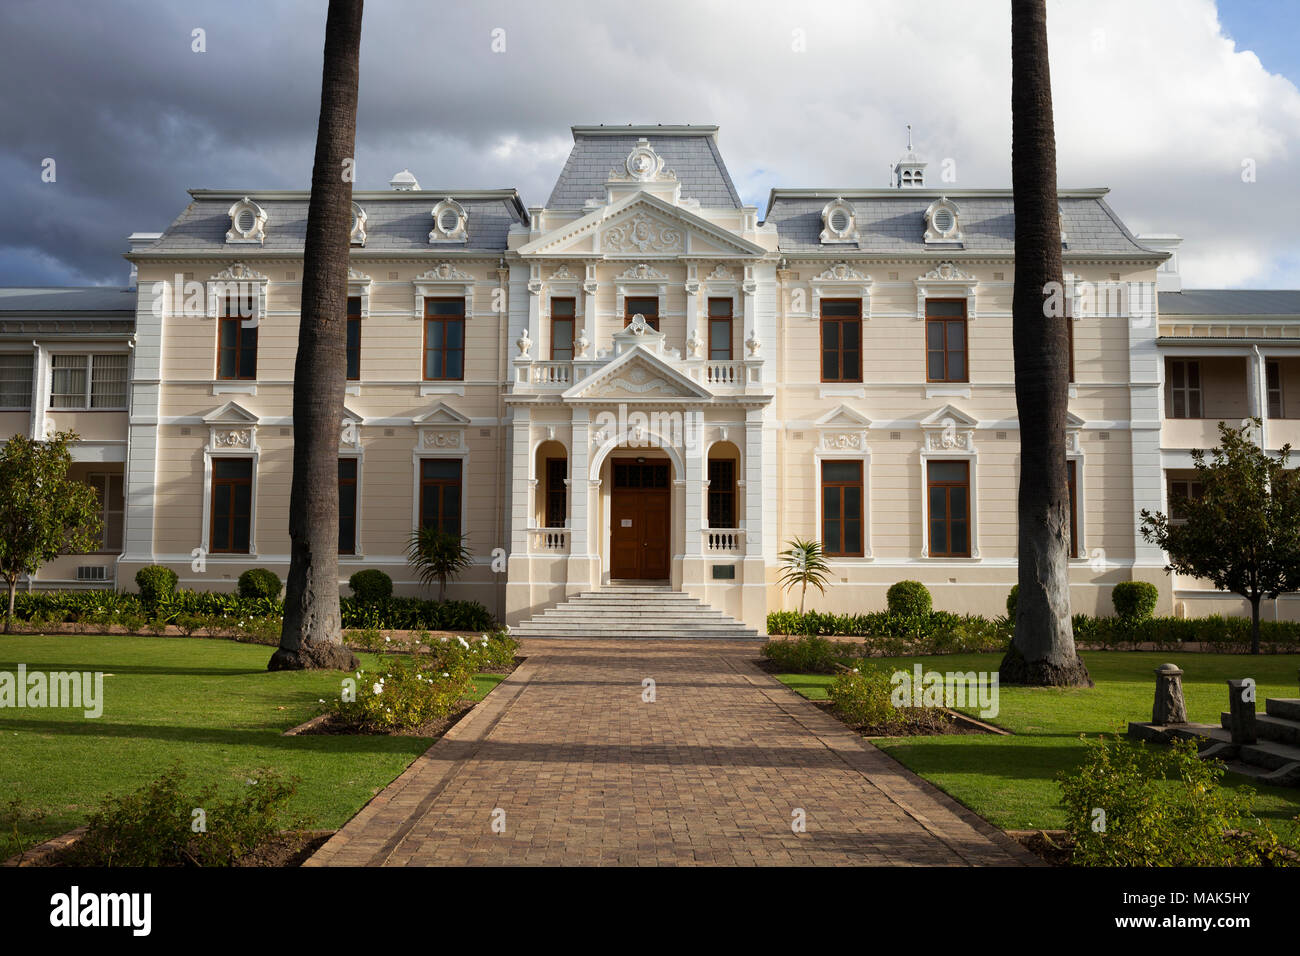 The front entrance to the Theological Seminary in Stellenbosch. - Stock Image